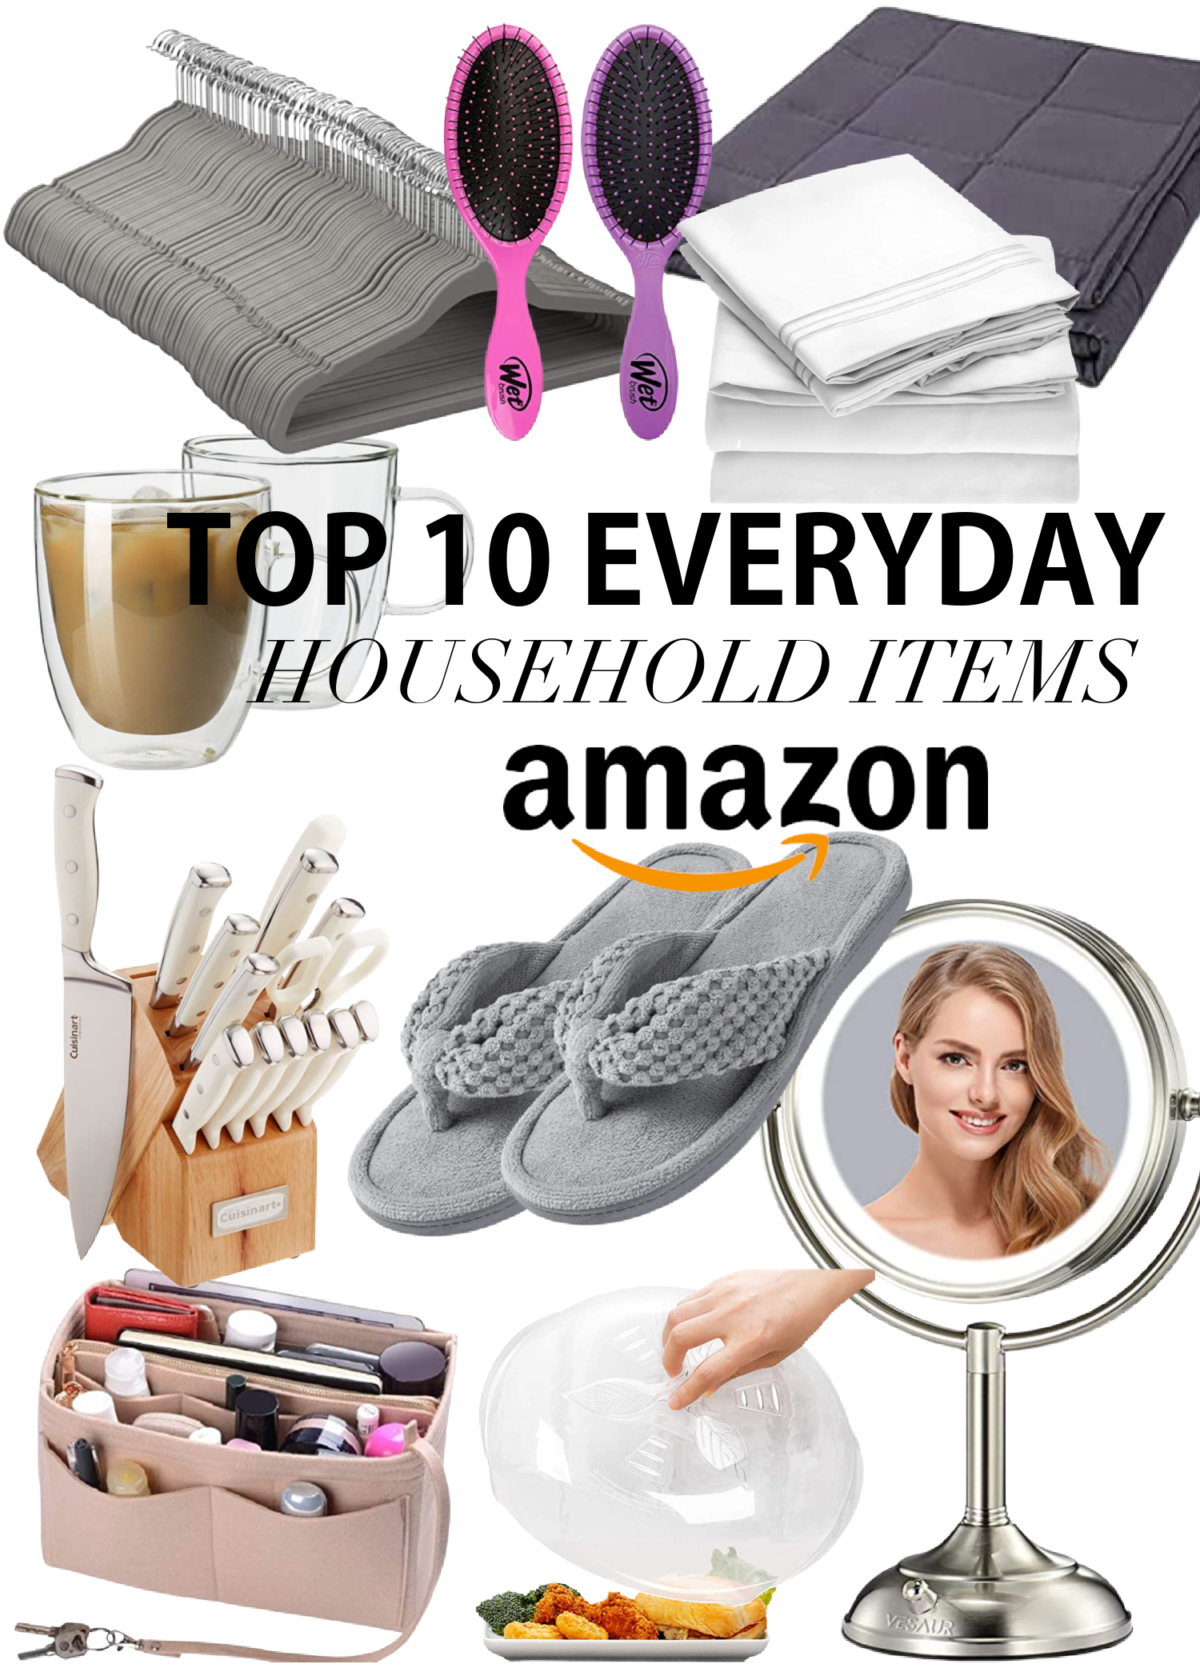 Top 10 Amazon Household Items